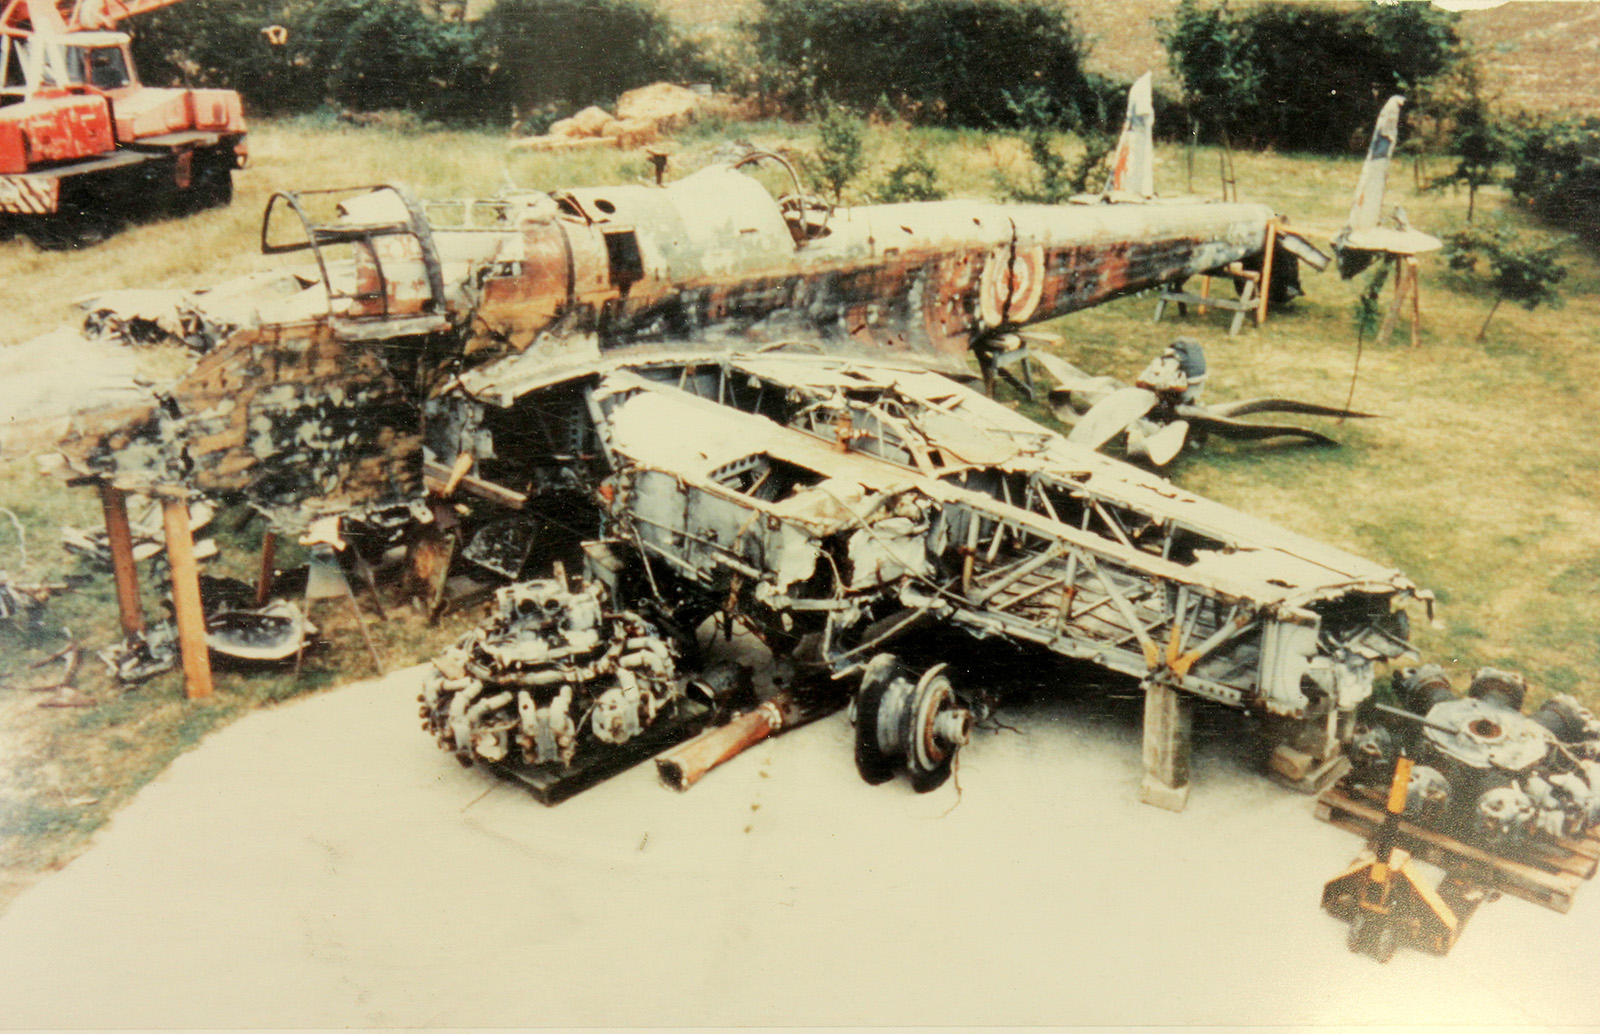 P1344 as she looked when laid out by Jeet Mahal for inspection by the RAF Museum in 1992. (photo by Peter R Arnold via RAF Museum)